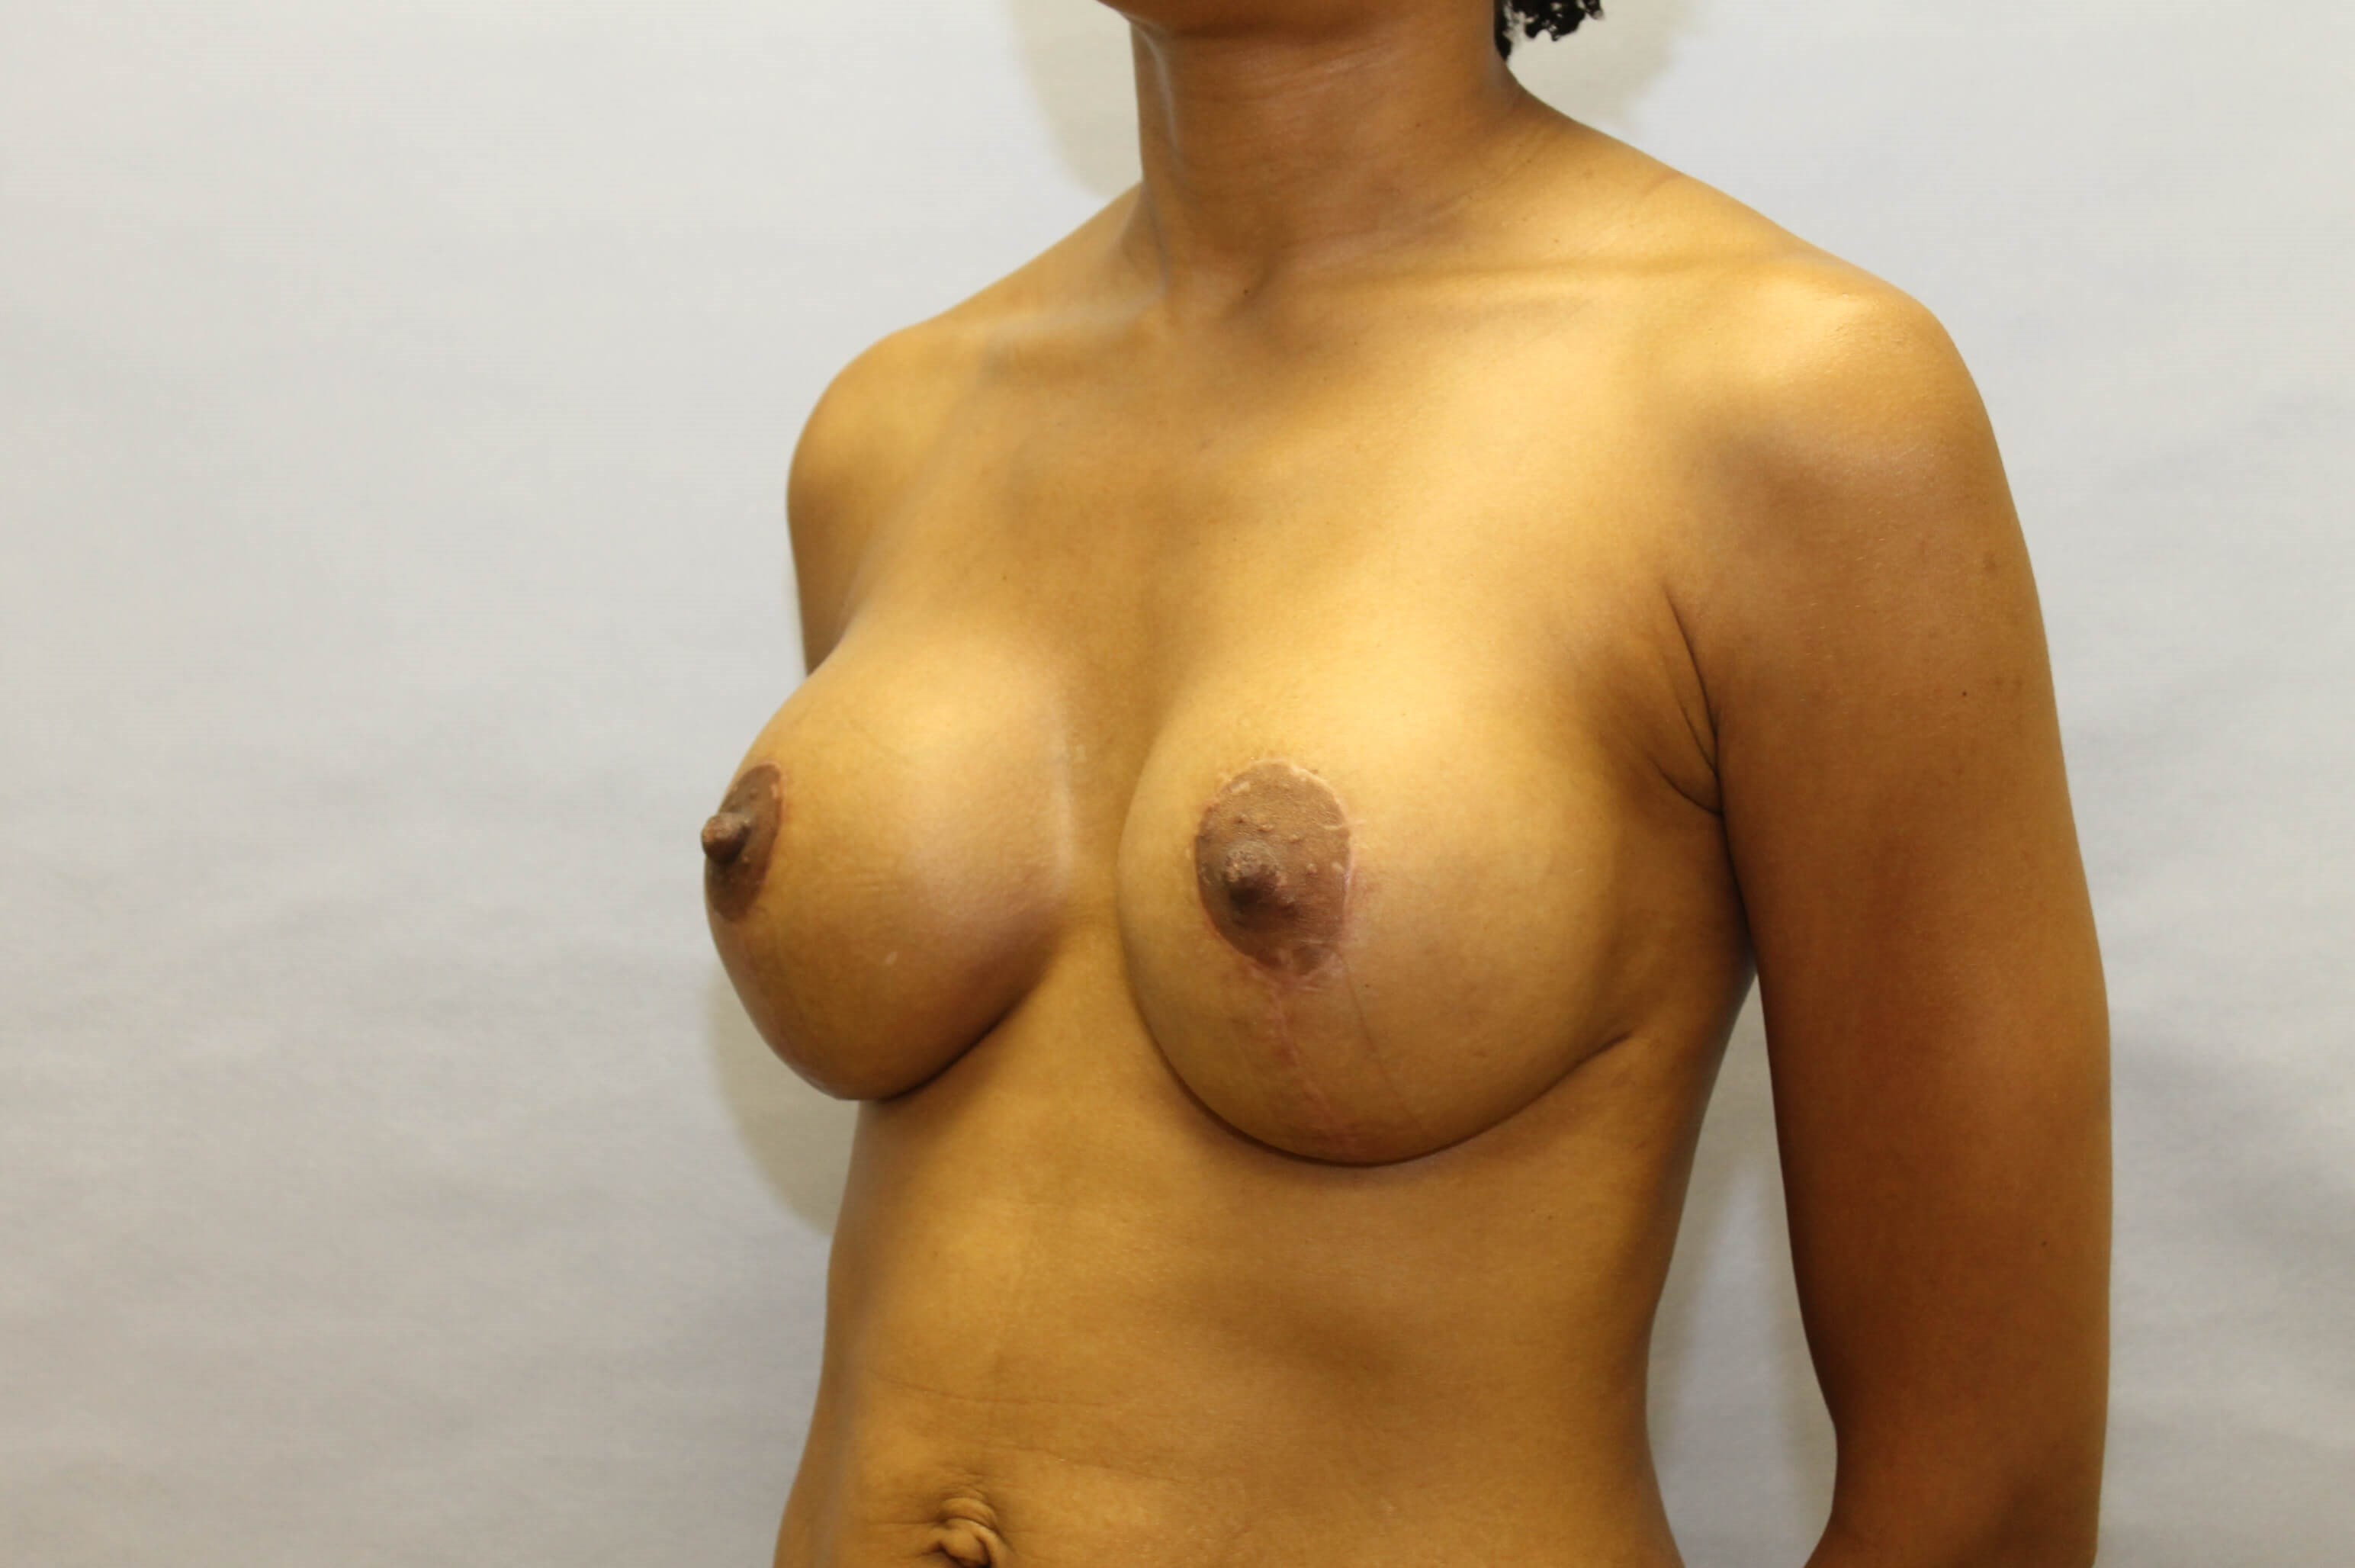 Revision Breastlift with gels After